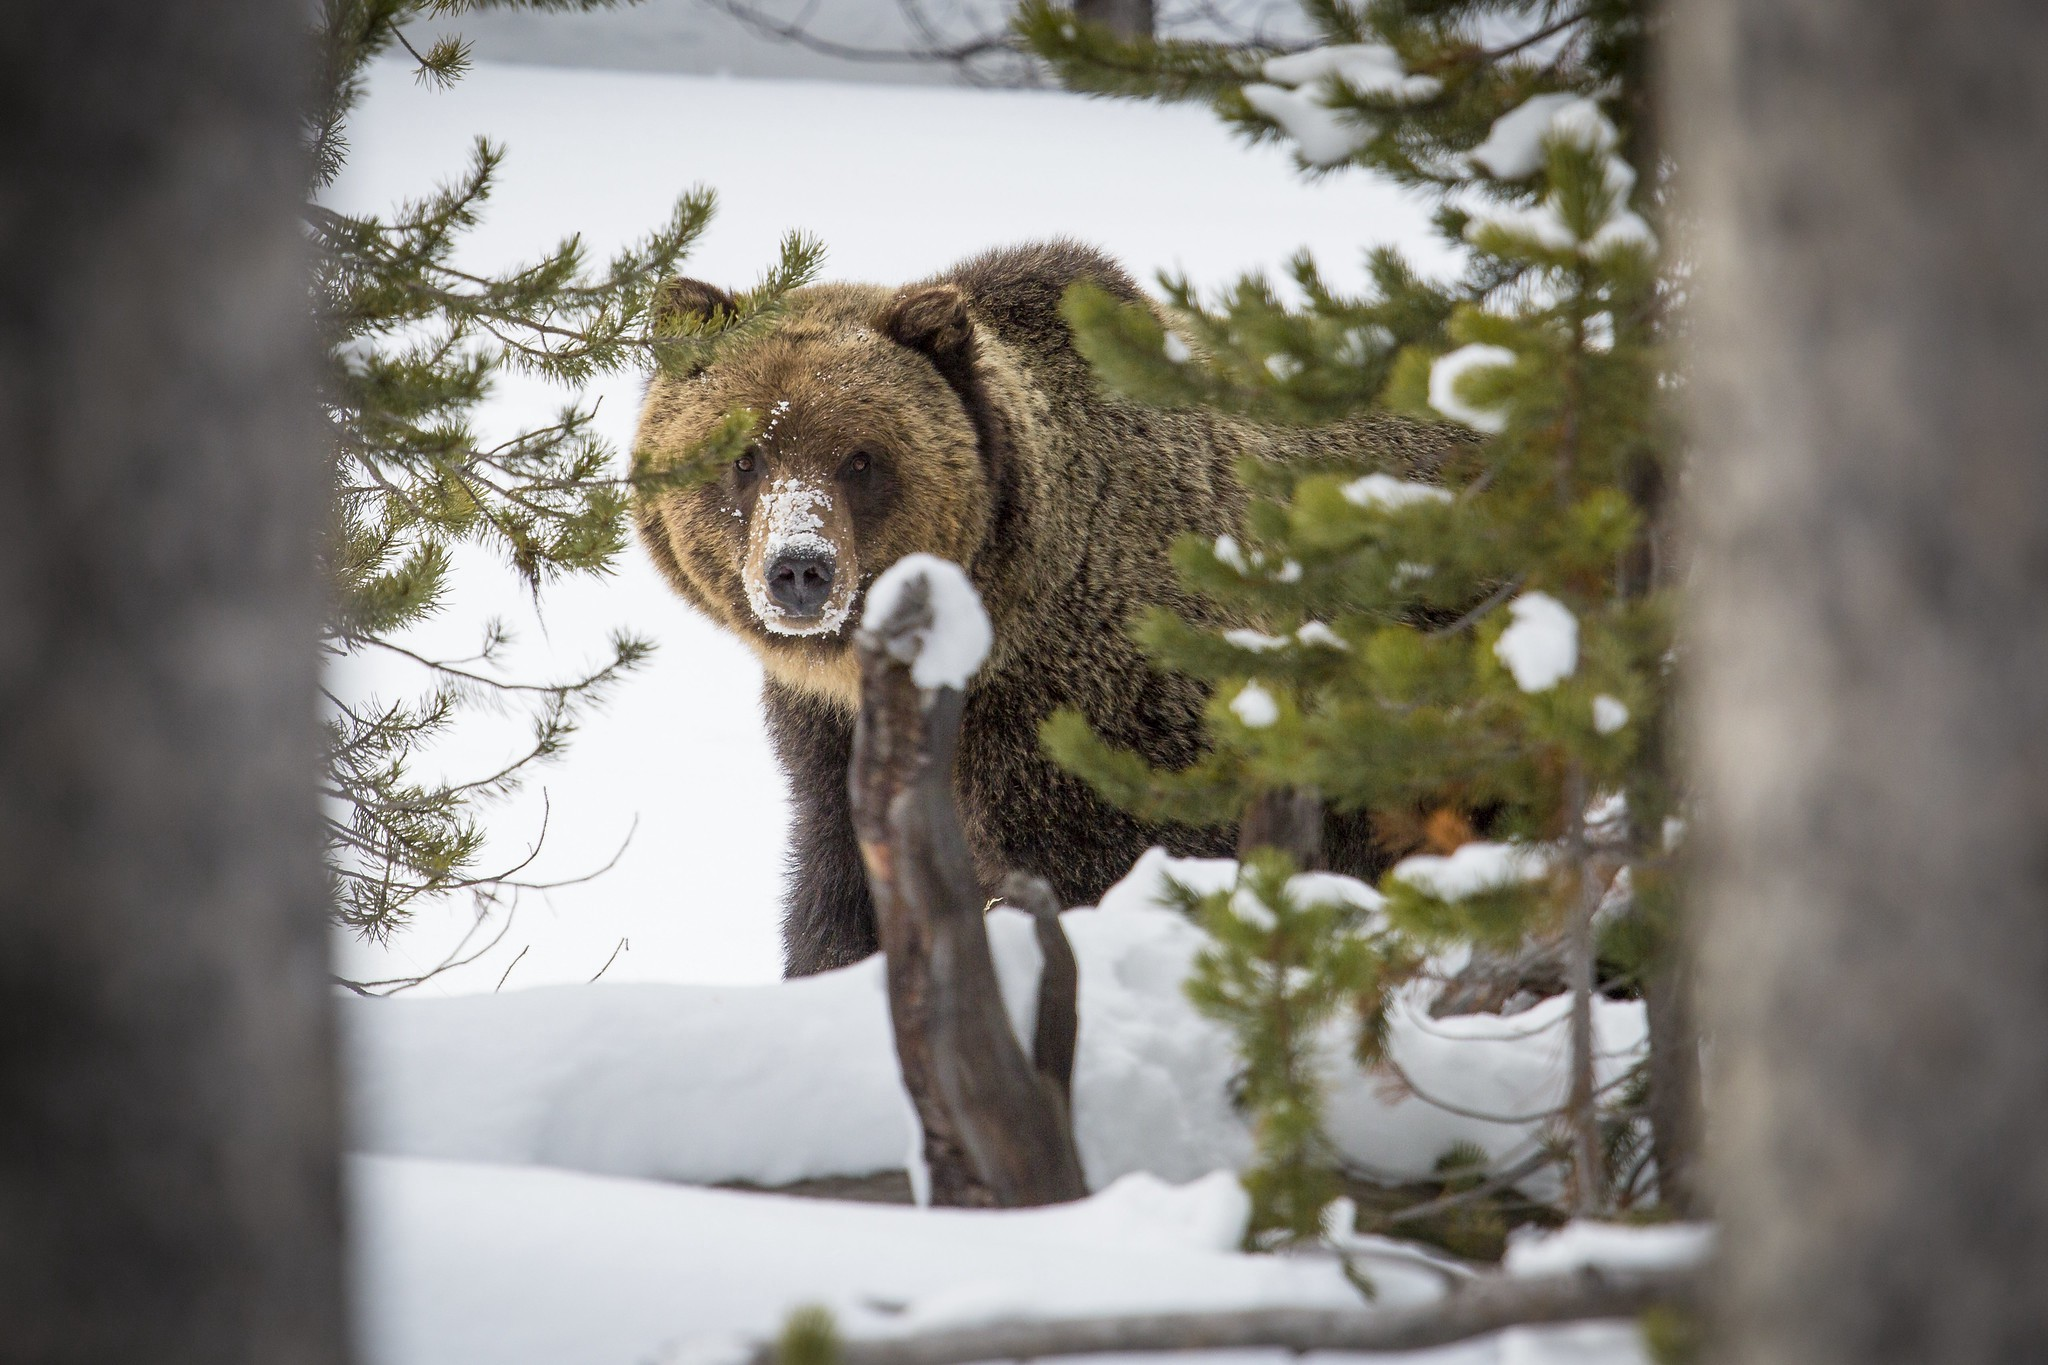 Grizzly bear in snow peaking out from behind pine trees